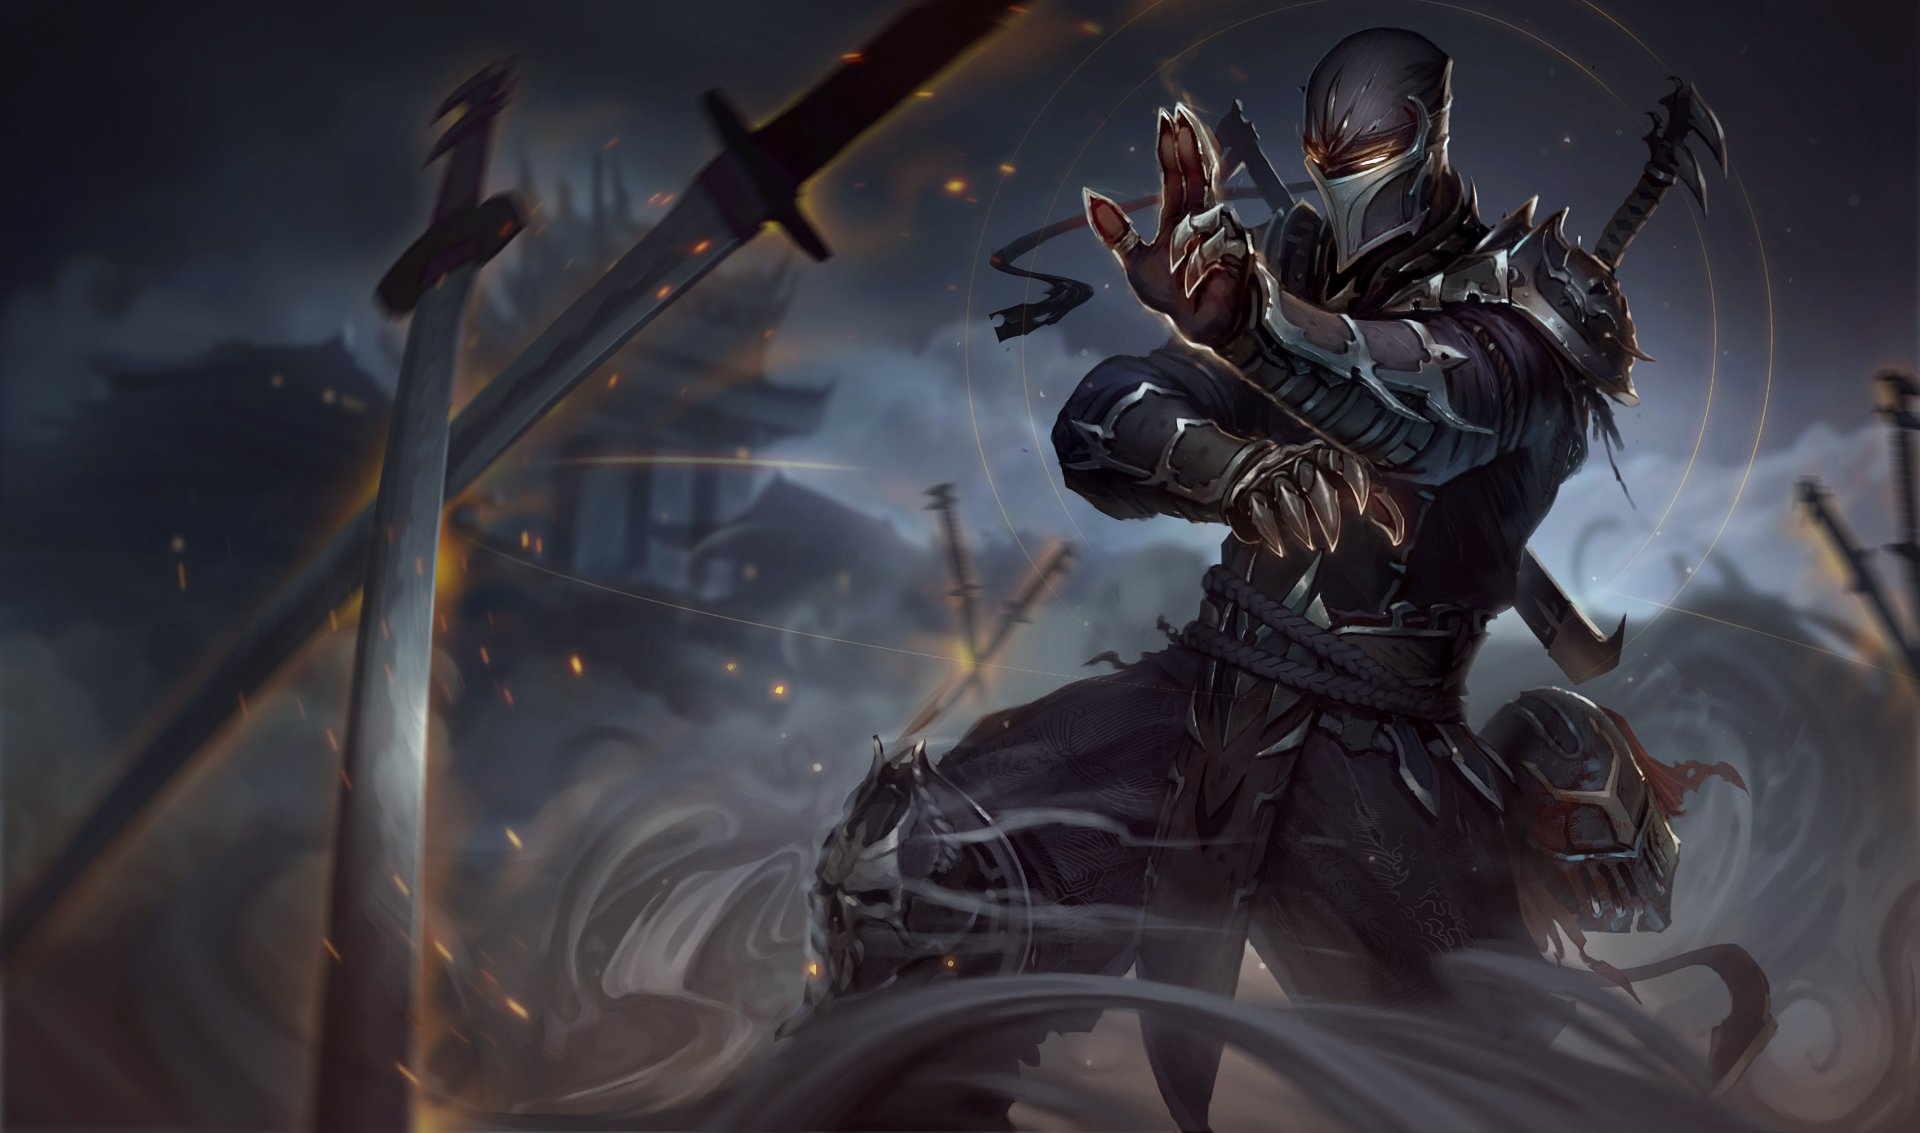 Video Game - League Of Legends  Shen (League Of Legends) Wallpaper